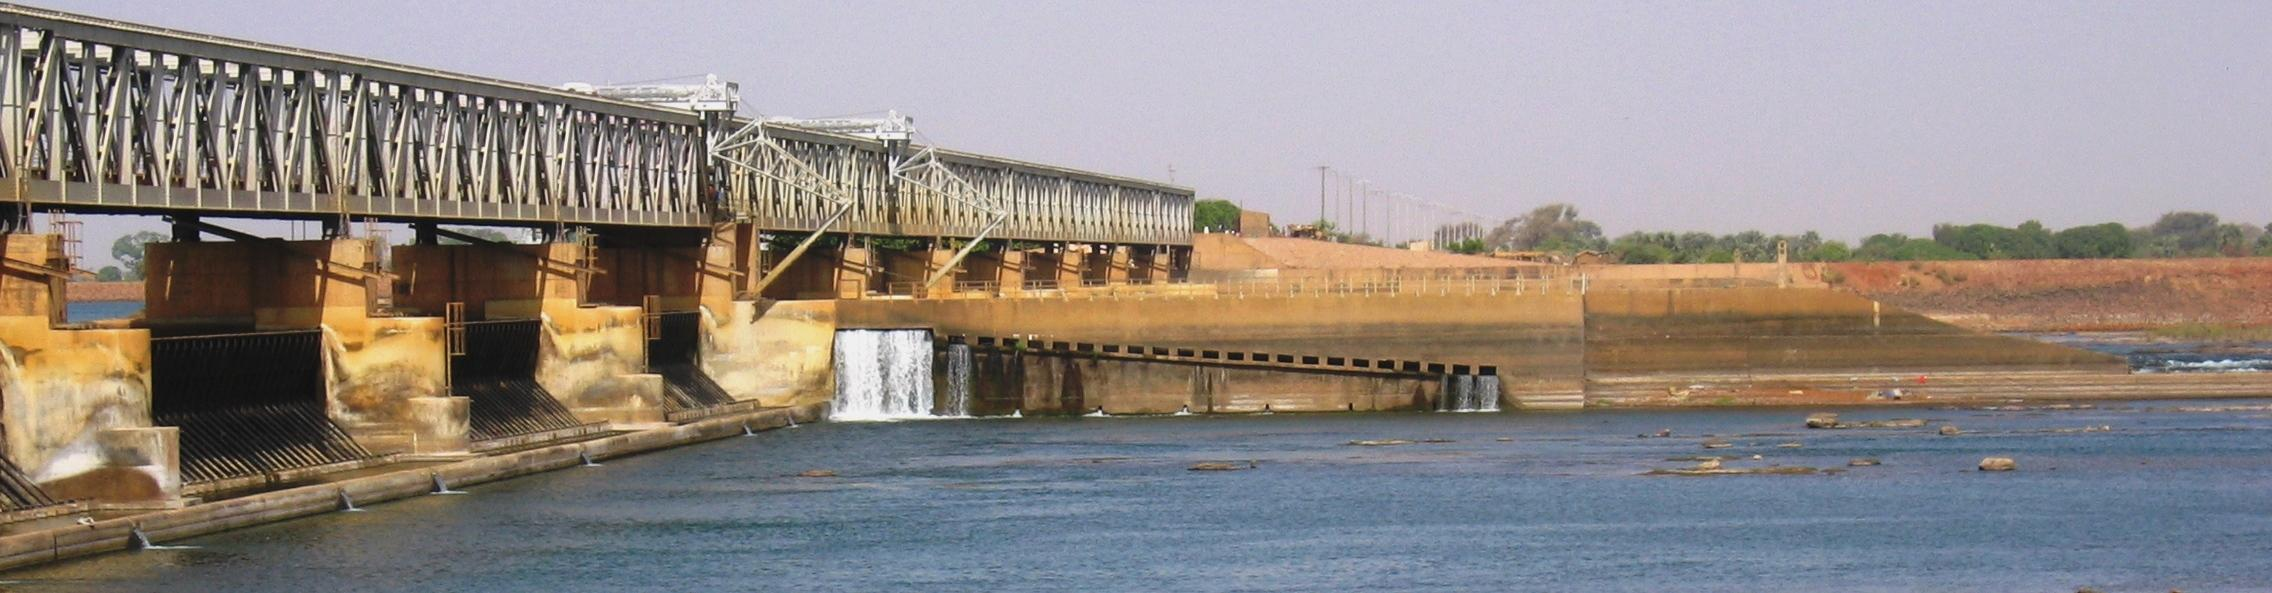 Infrastructures hydrologiques